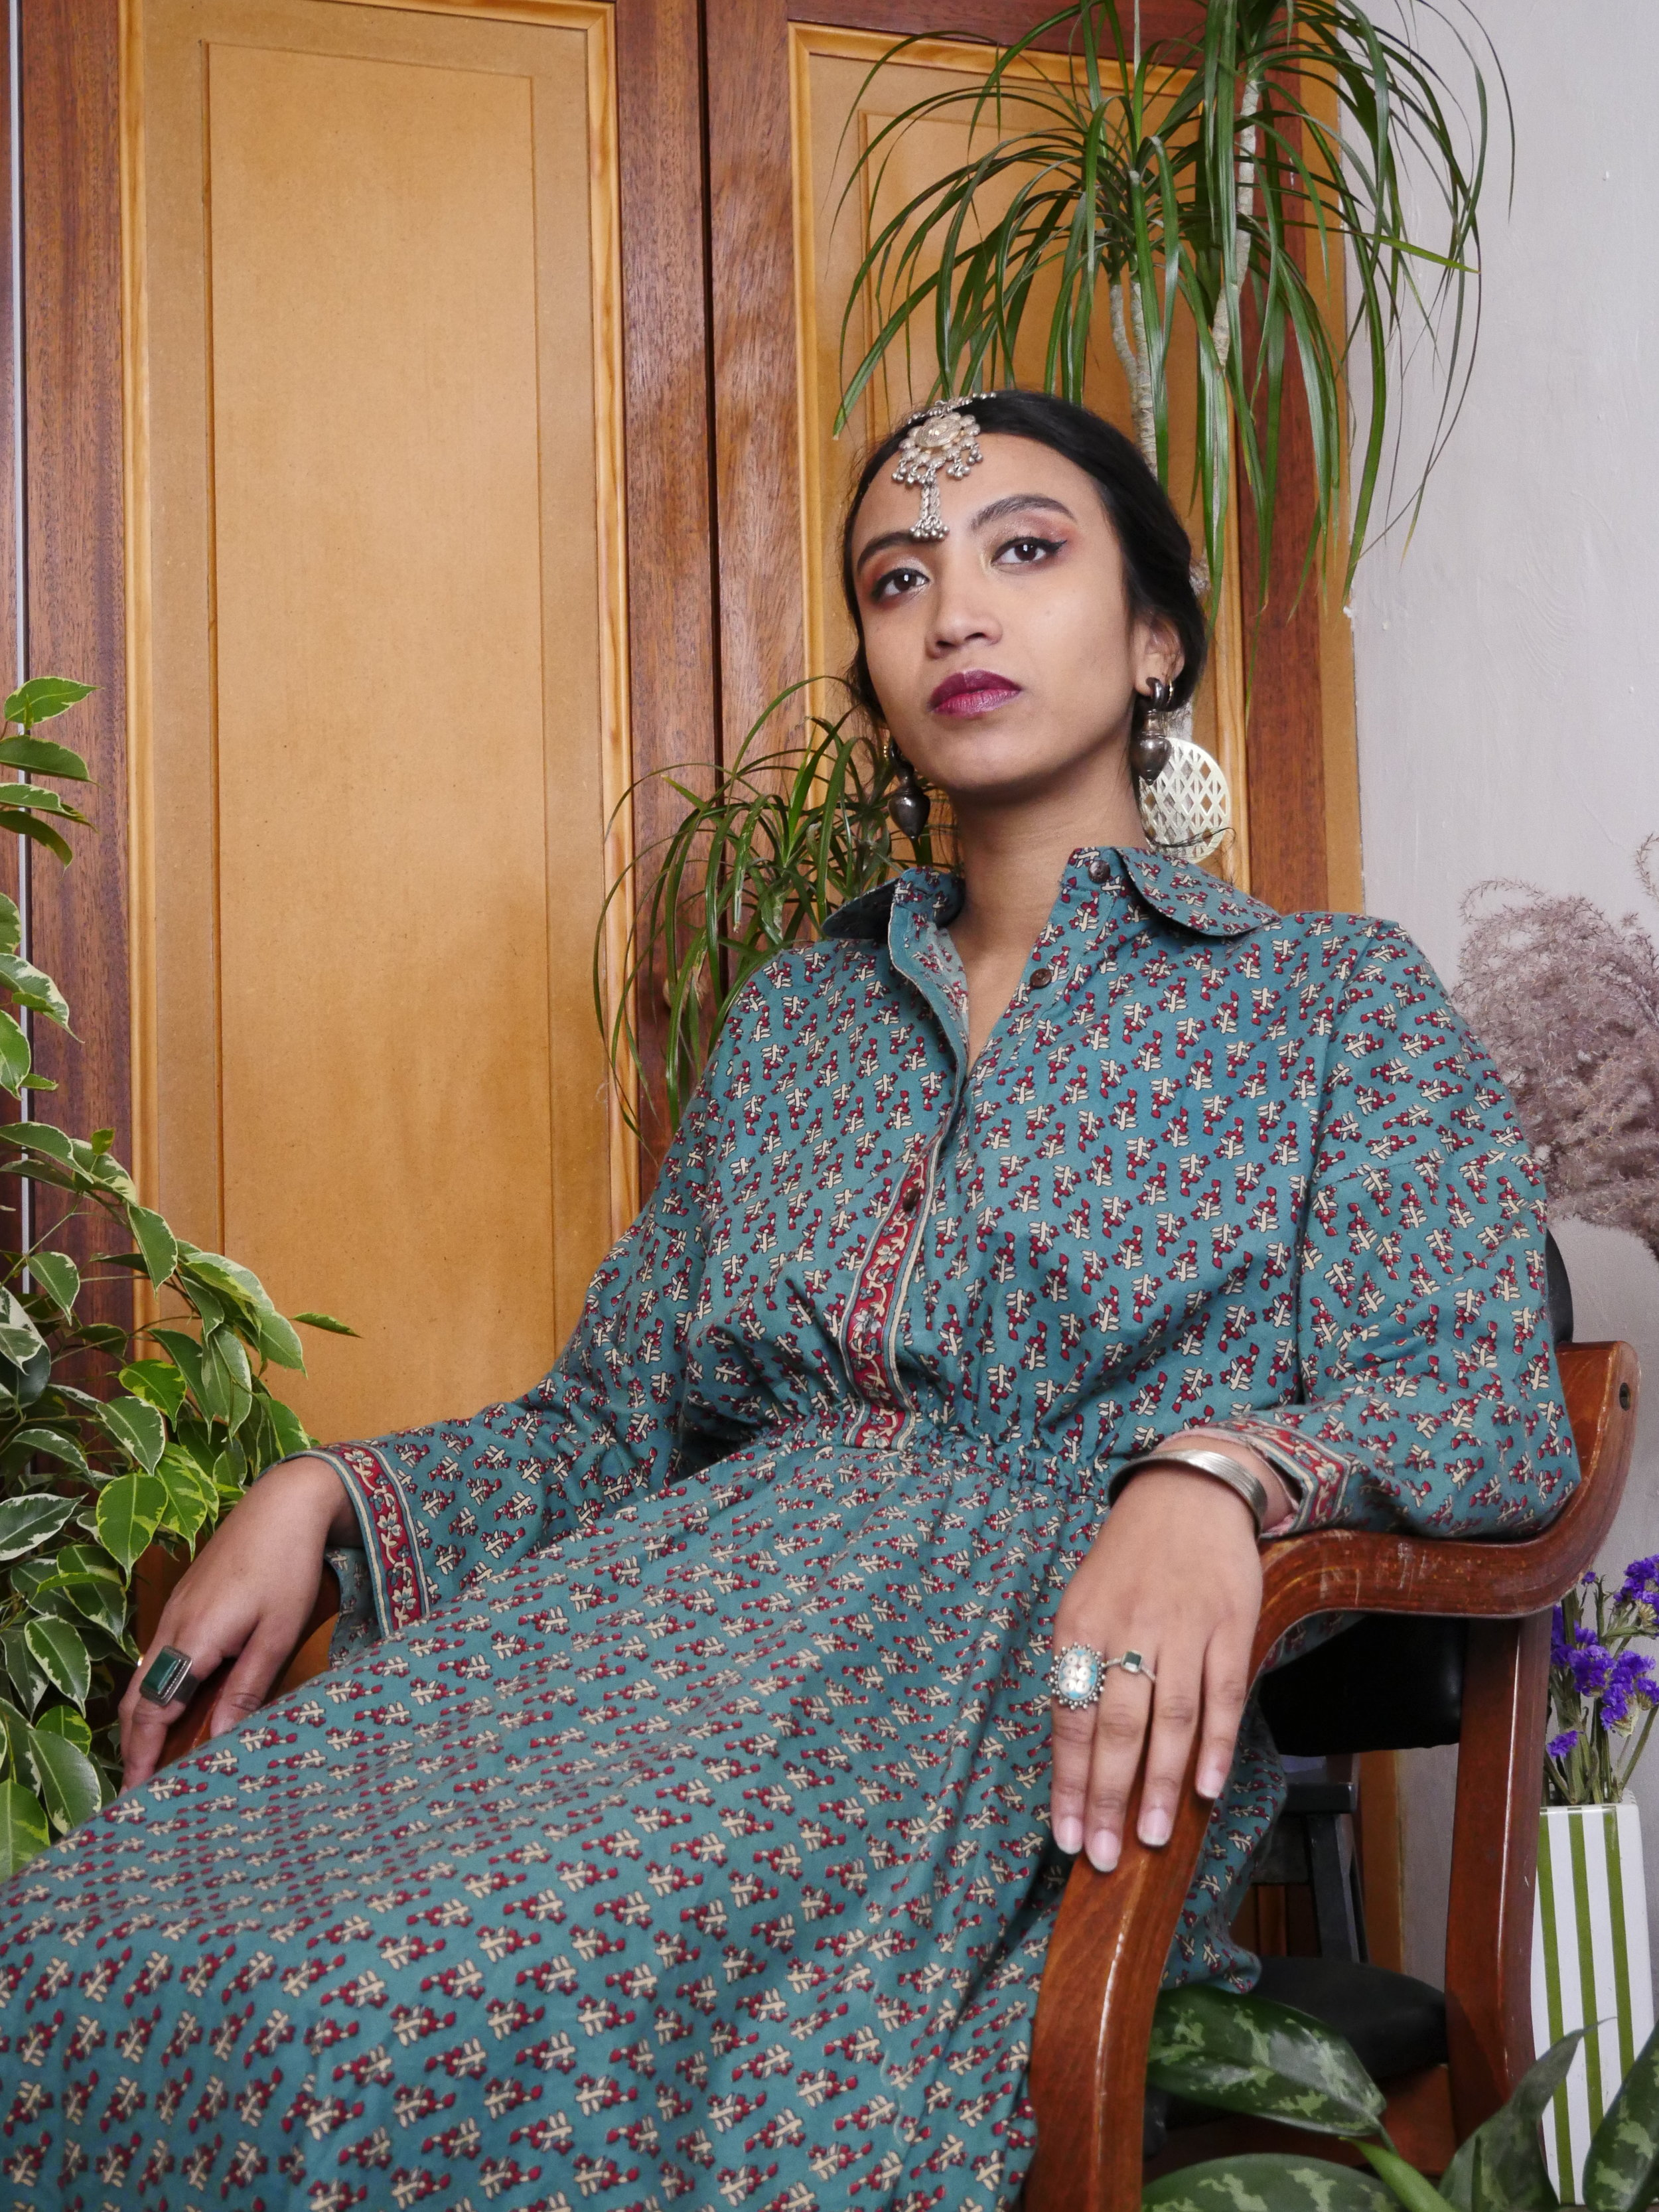 ANA BLUE WATER LONG DRESS - 100% Indian cotton, Made in Bangladesh with love